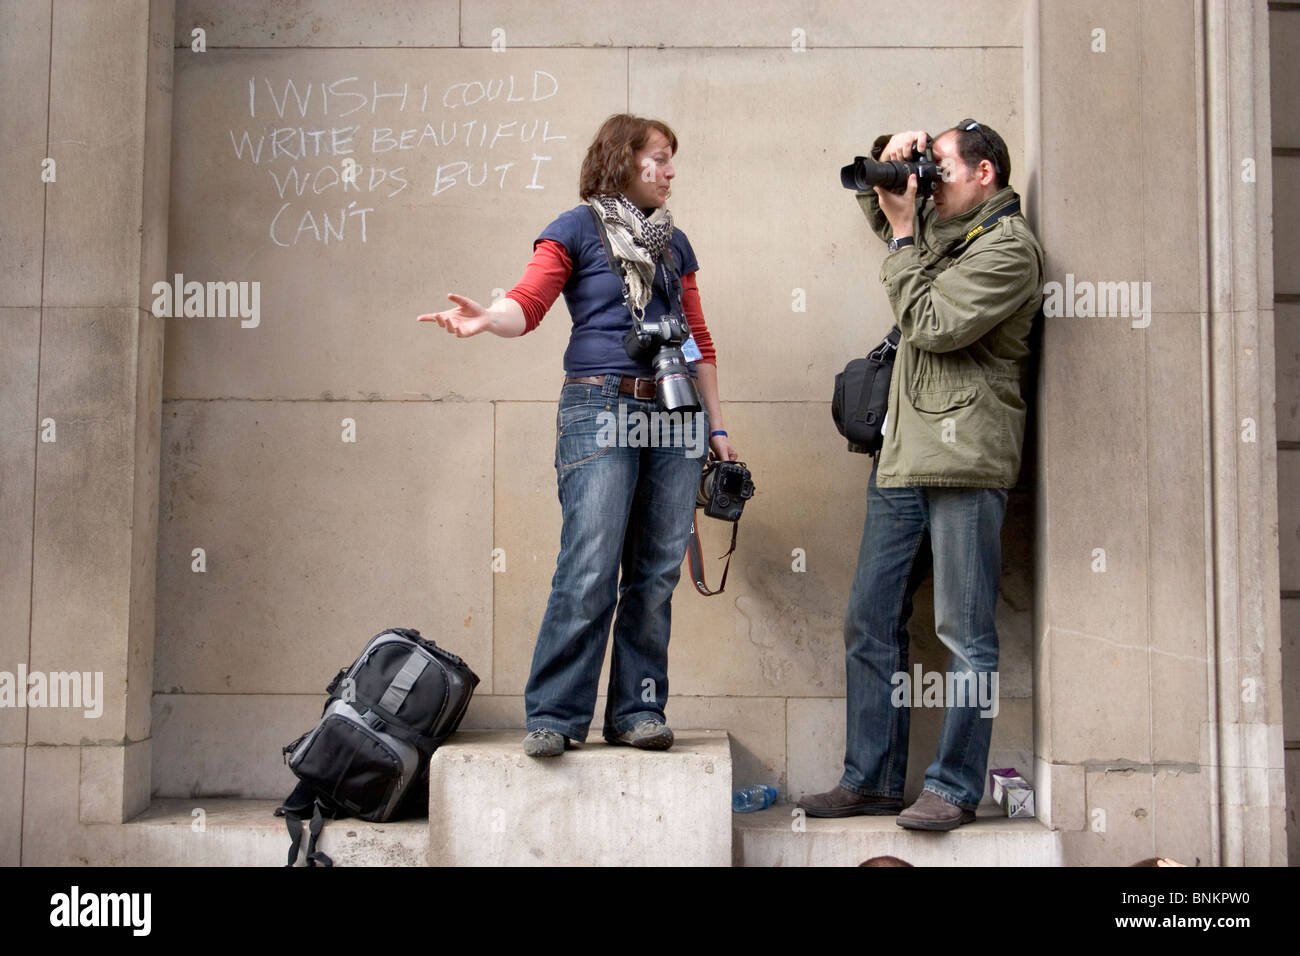 Photographers at G20 protest with graffiti chalked on the wall 'I wish I could write beautiful words but I can't' - Stock Image